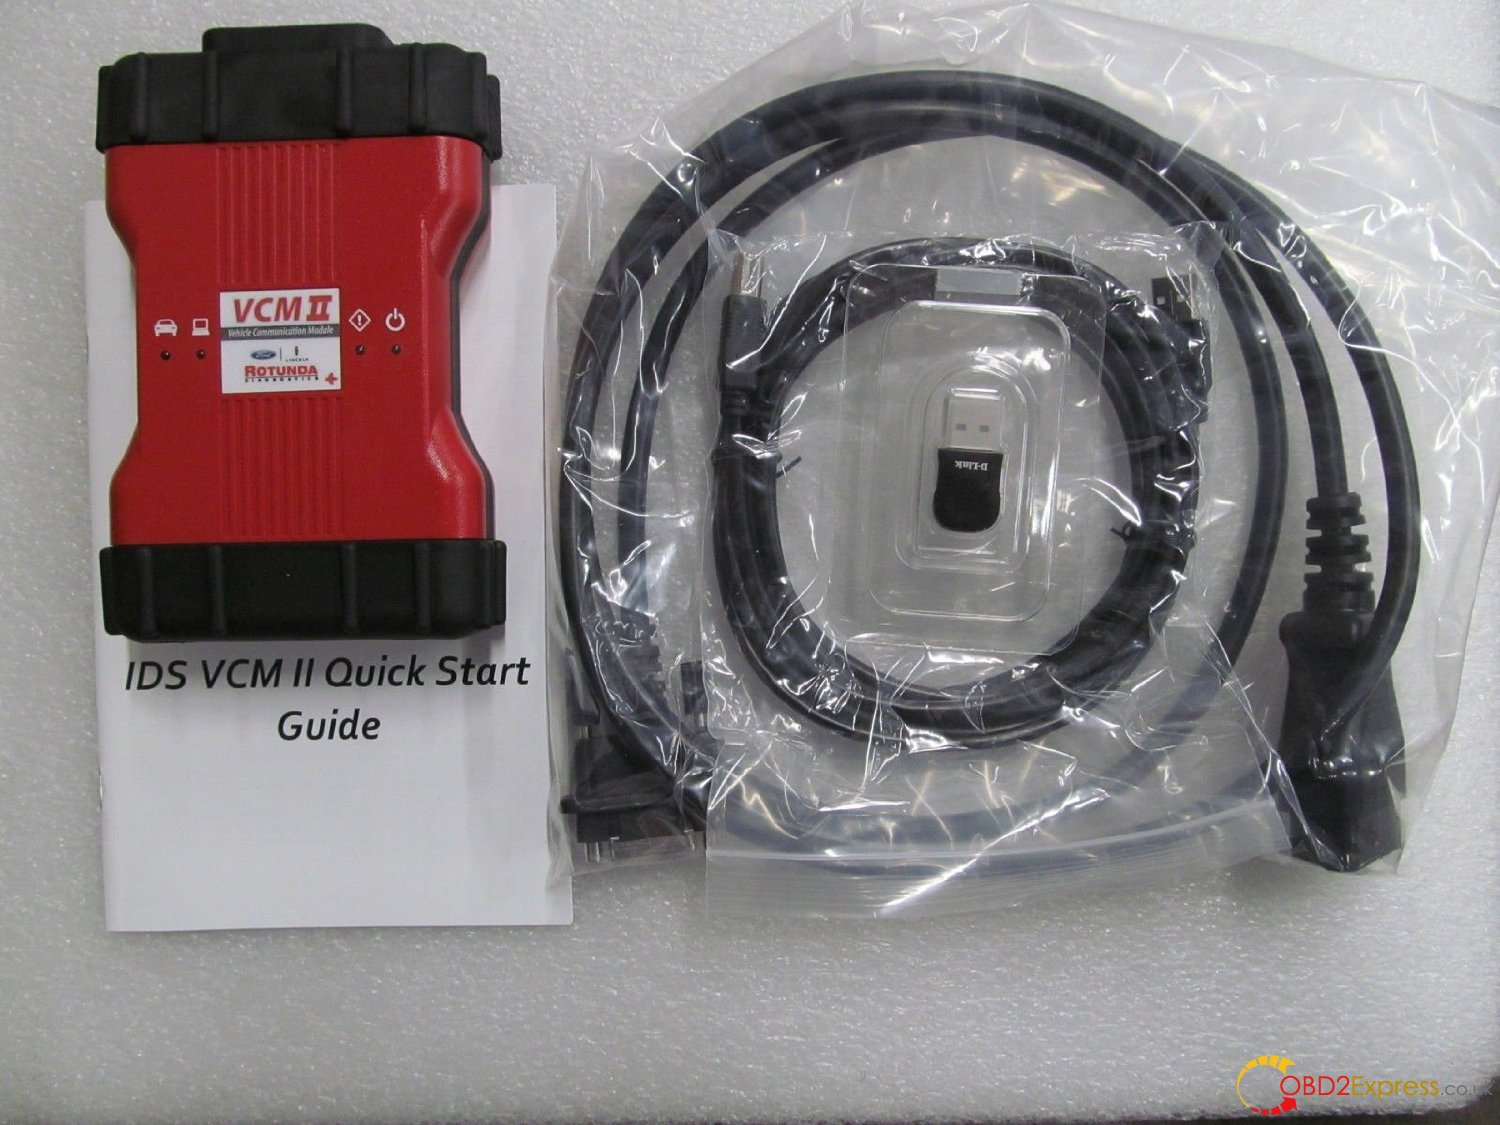 ford vcm ii - BMW EWS-4.3 & 4.4 IC Adaptor for X-PROG/AK90/R270 programmer